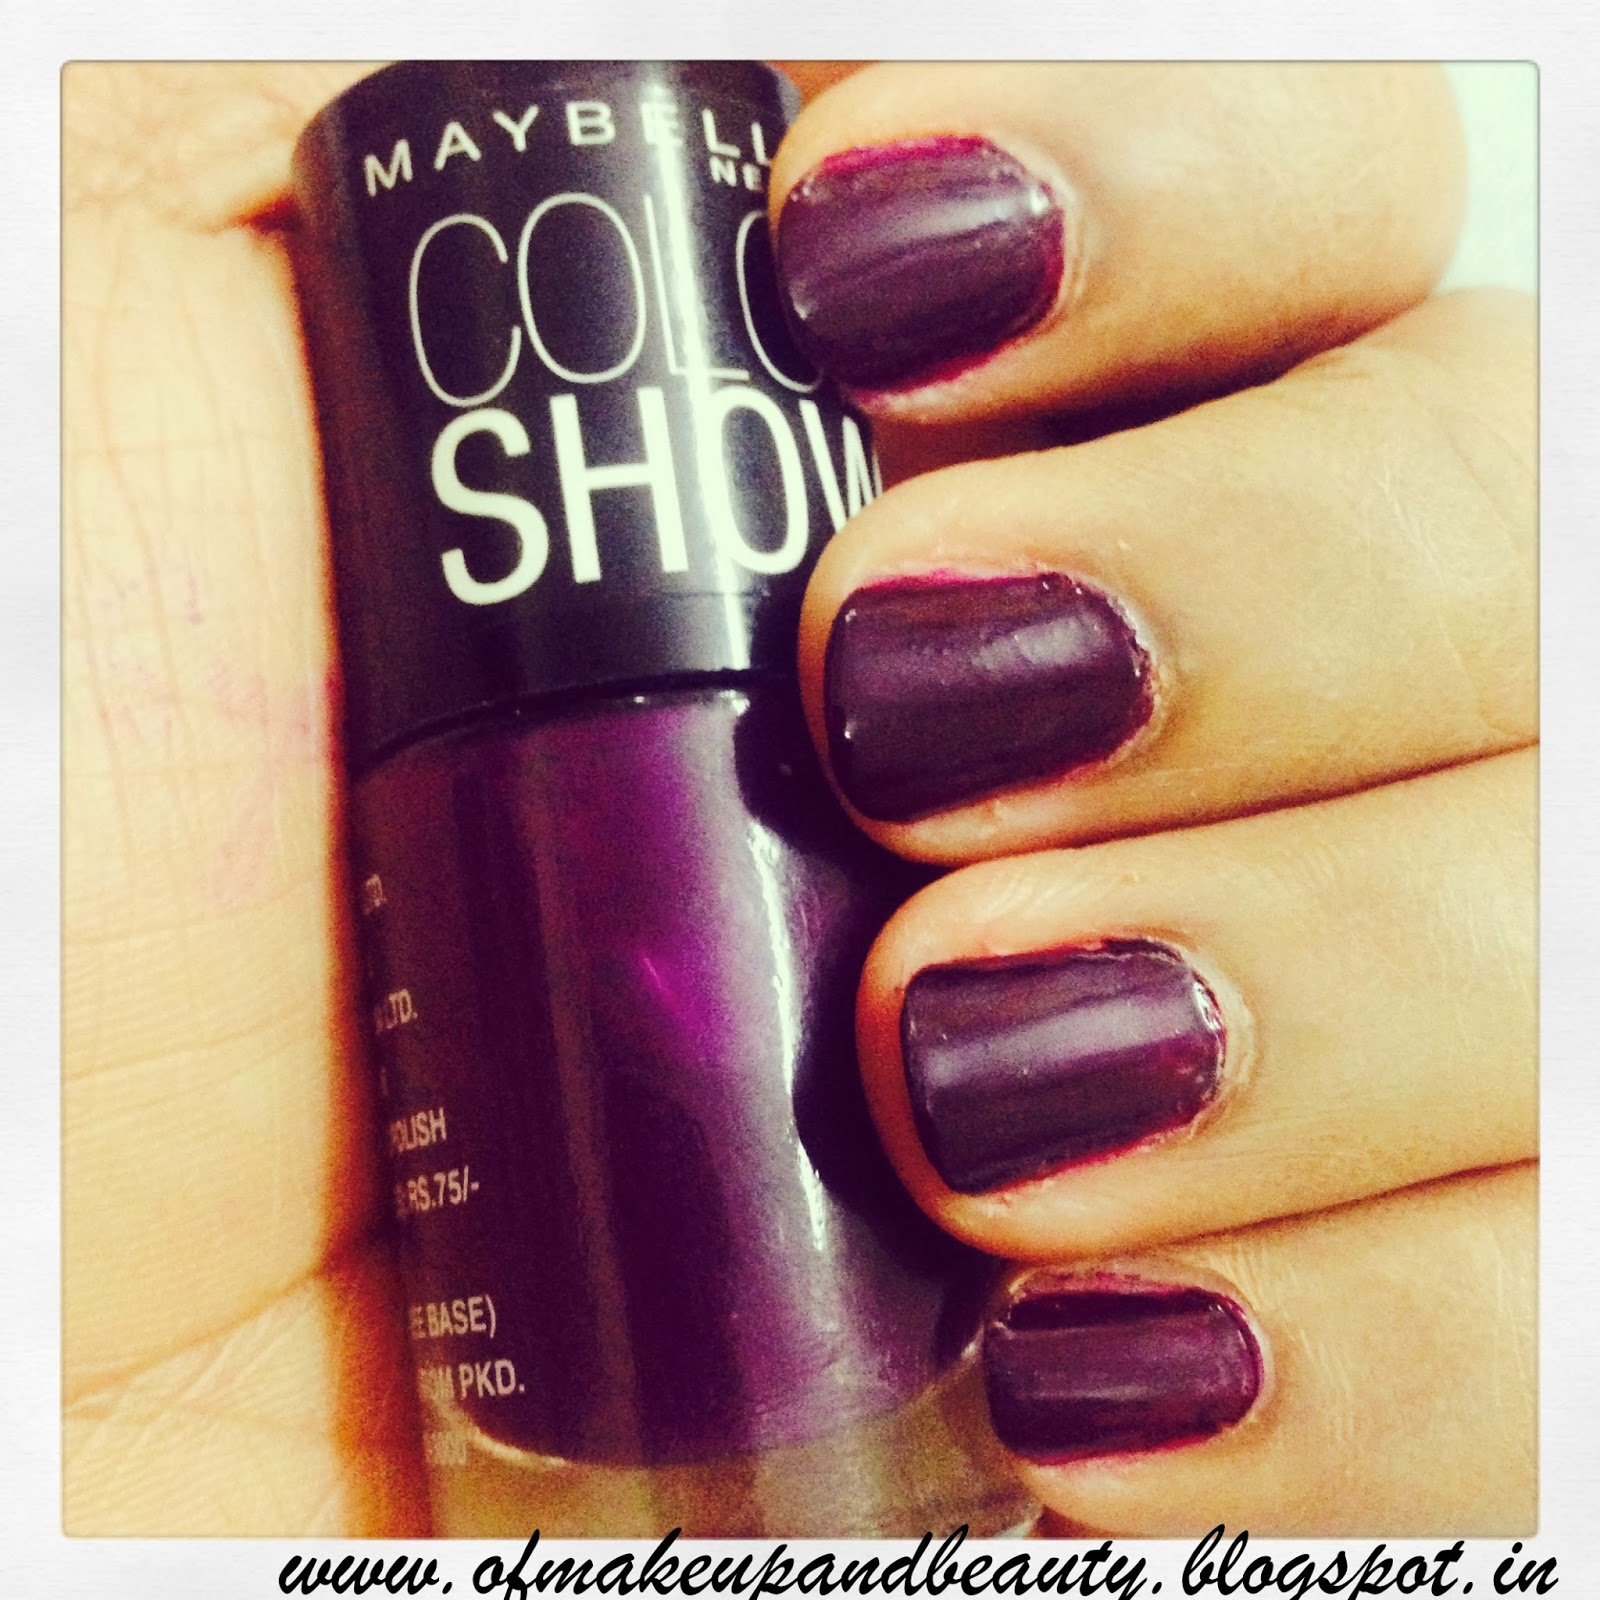 Watch Maybelline Color Show Nail Lacquer Review video